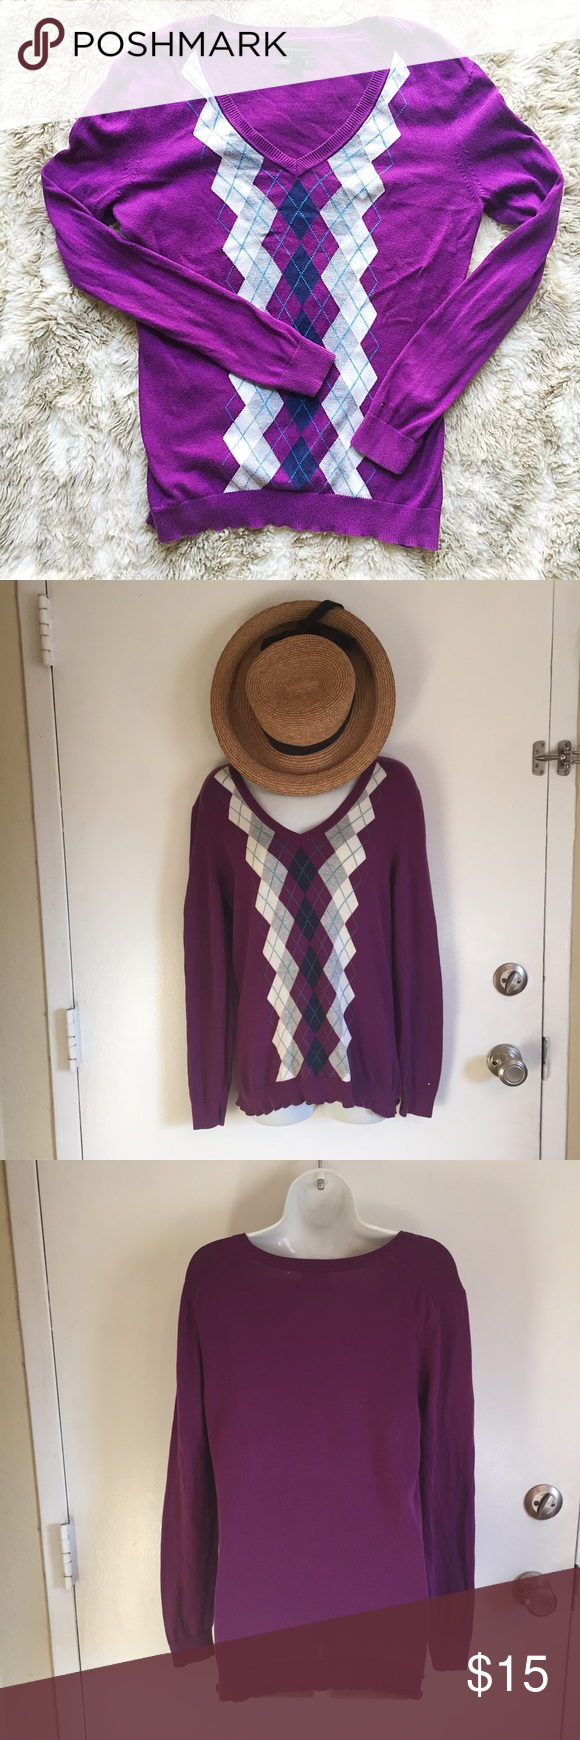 🍂SALE🍂Tommy Hilfiger V-Neck Sweater Tommy Hilfiger 100% Pima cotton v-neck sweater. Size medium. #tommyhilfiger #pima #cotton #vneck #purple #medium #punkydoodle  No modeling Smoke and pet free home I do discount bundles Tommy Hilfiger Sweaters V-Necks